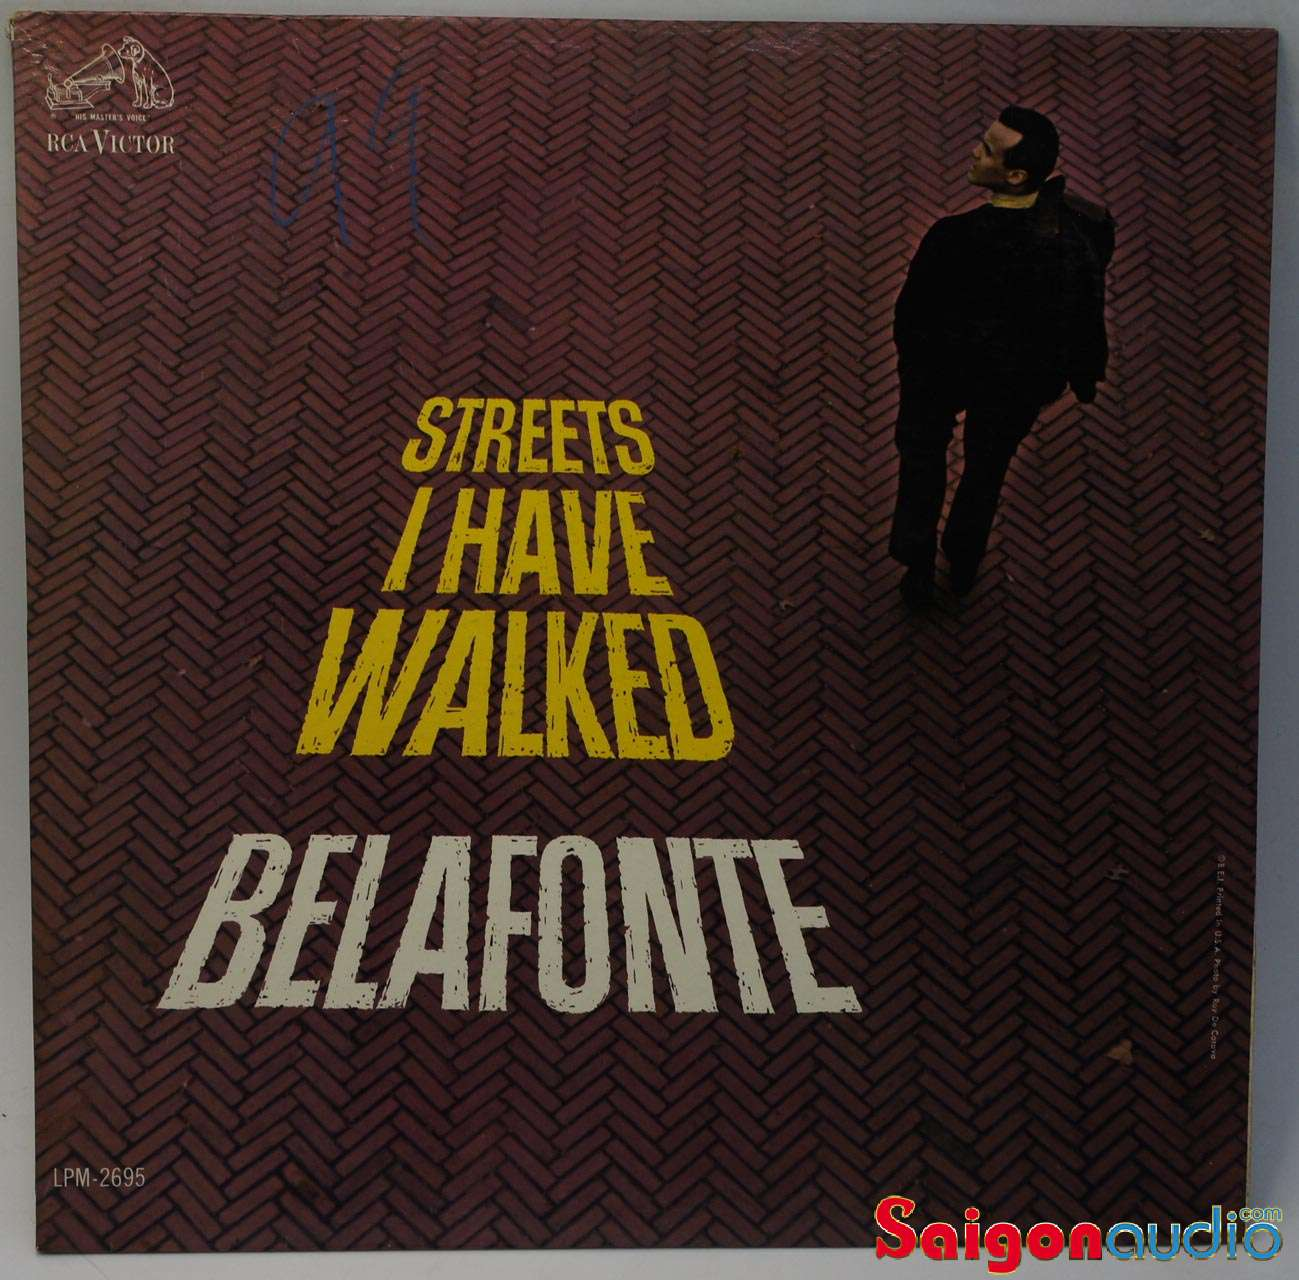 Đĩa than LP Harry Belafonte - Streets I Have Walked